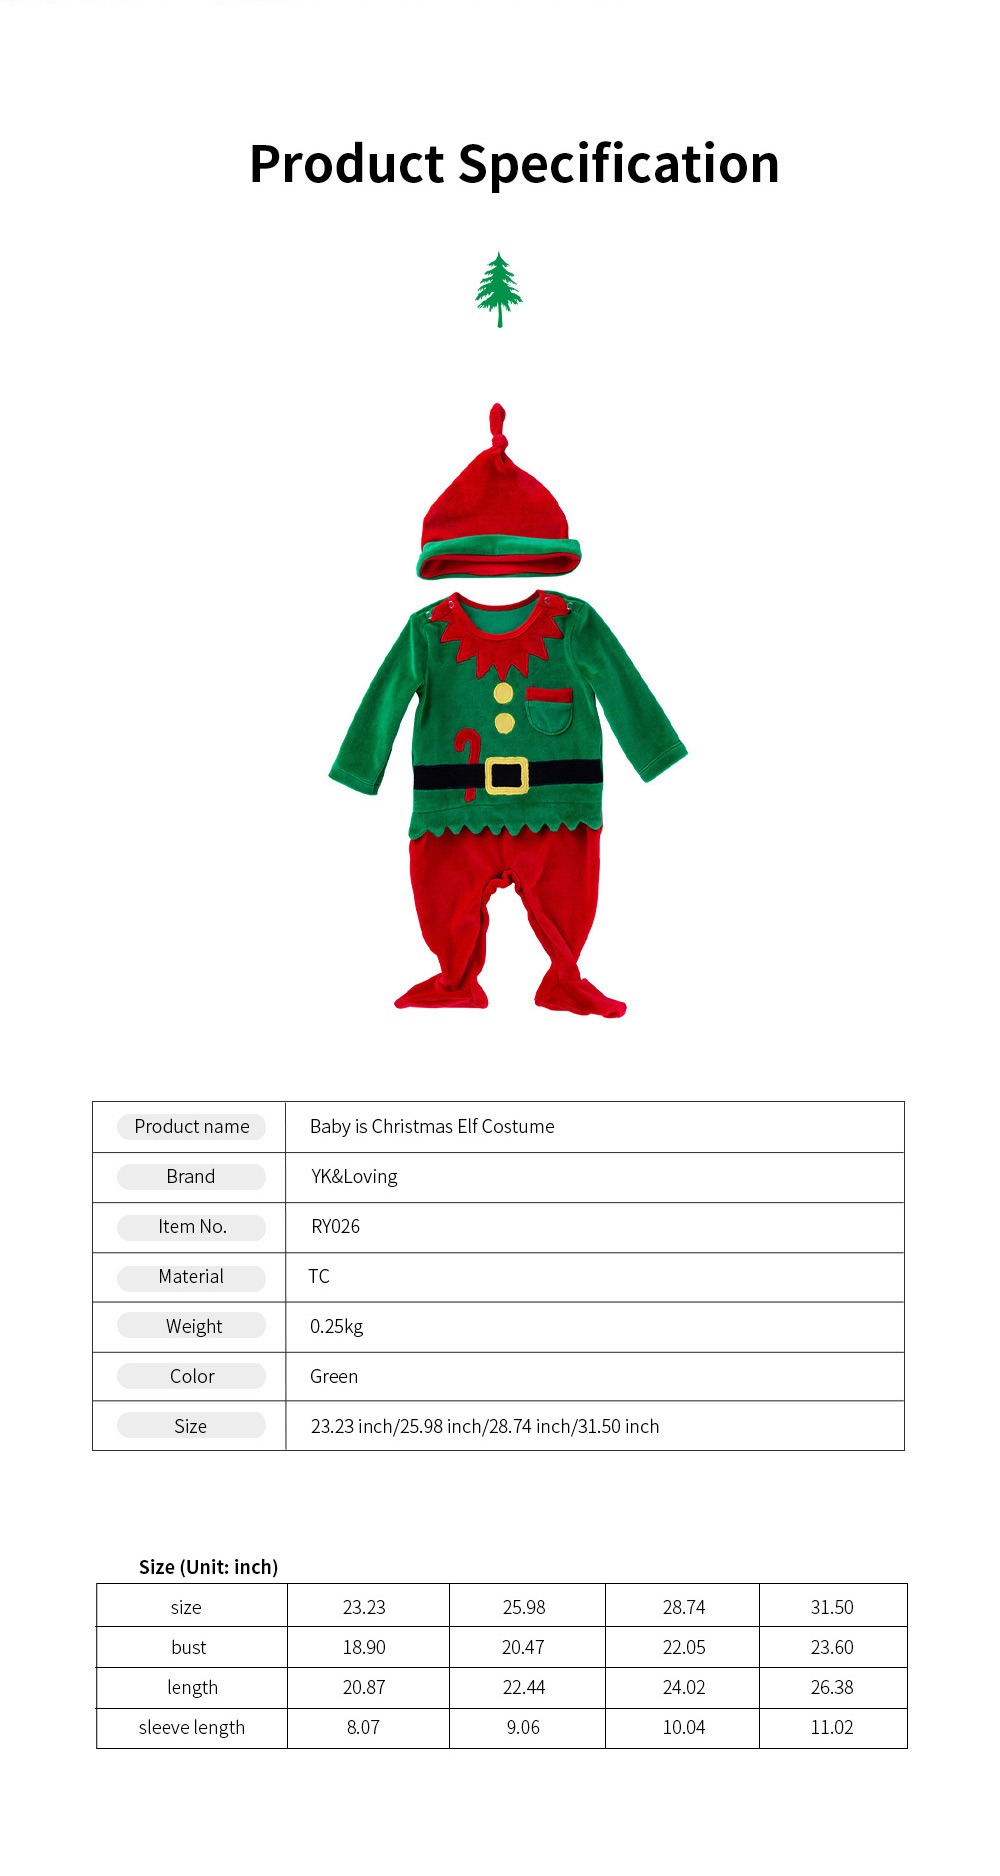 Christmas Elf Costume Green One-Piece Unisex Costume for 0-2 Baby with Long Sleeves and Cute Hat 2pcs 6